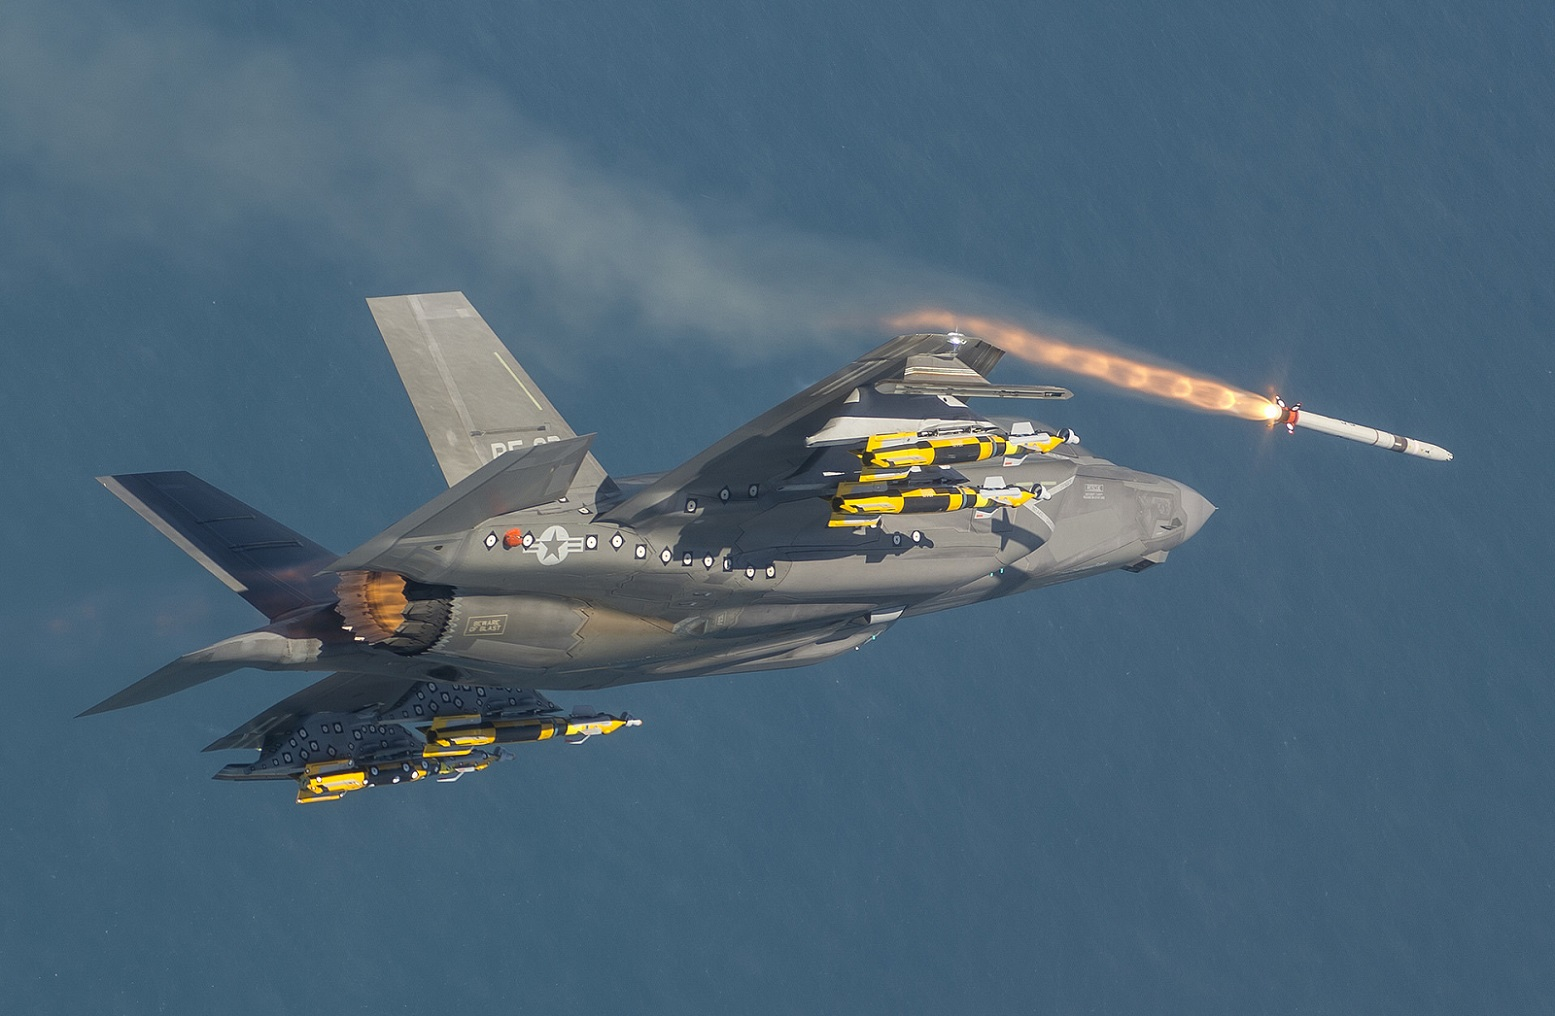 10 Reasons Nearly Nothing Can Stop the F-35 Stealth Fighter